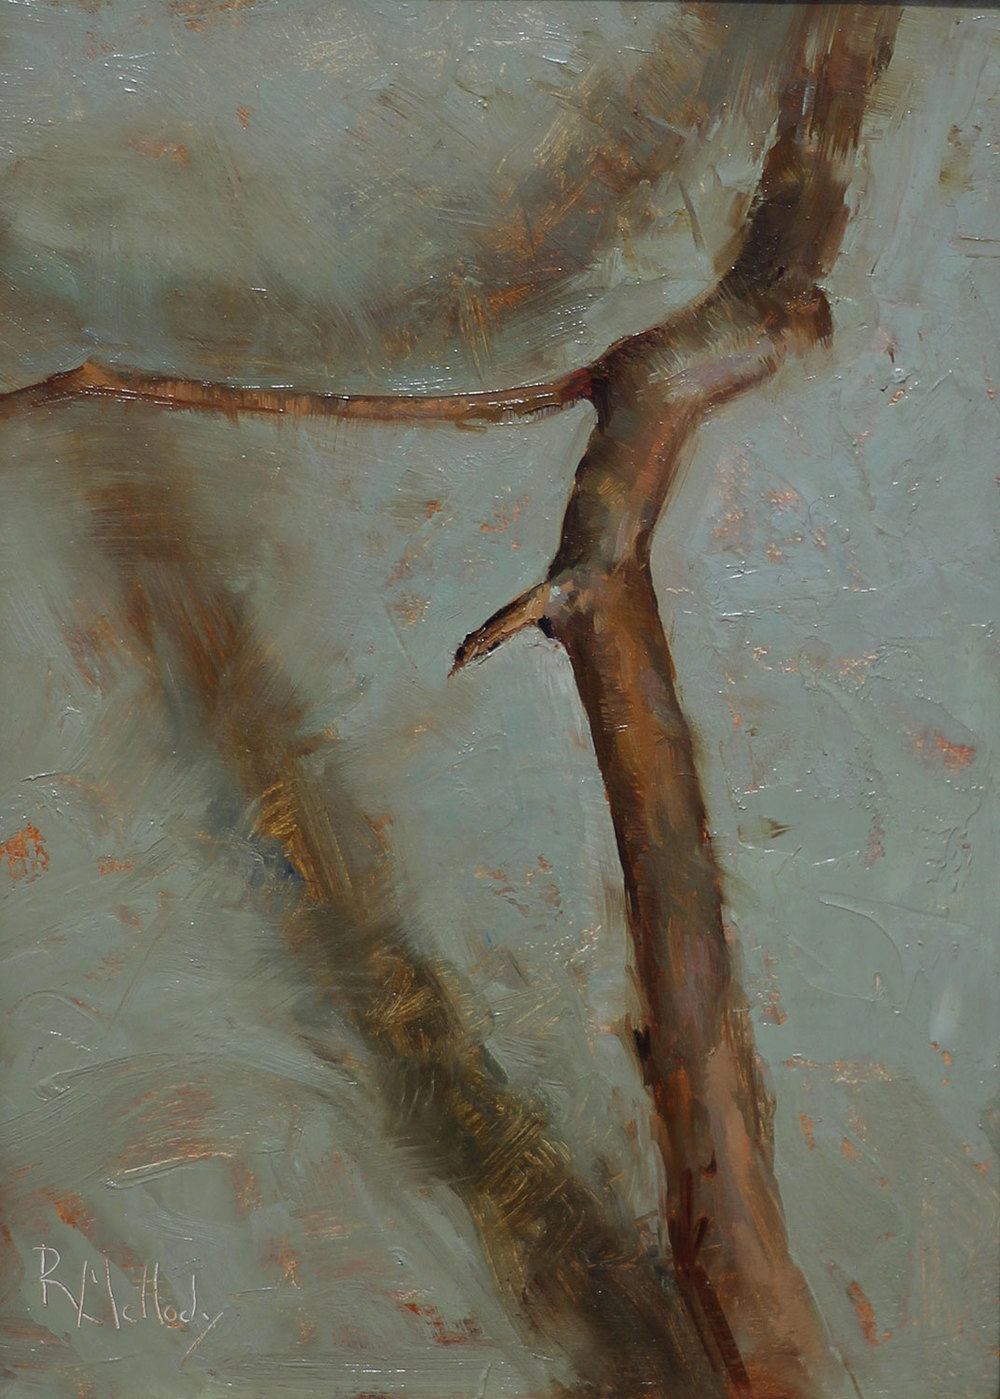 Stick Series #1, 7.5 x 10 inches, Oil on panel